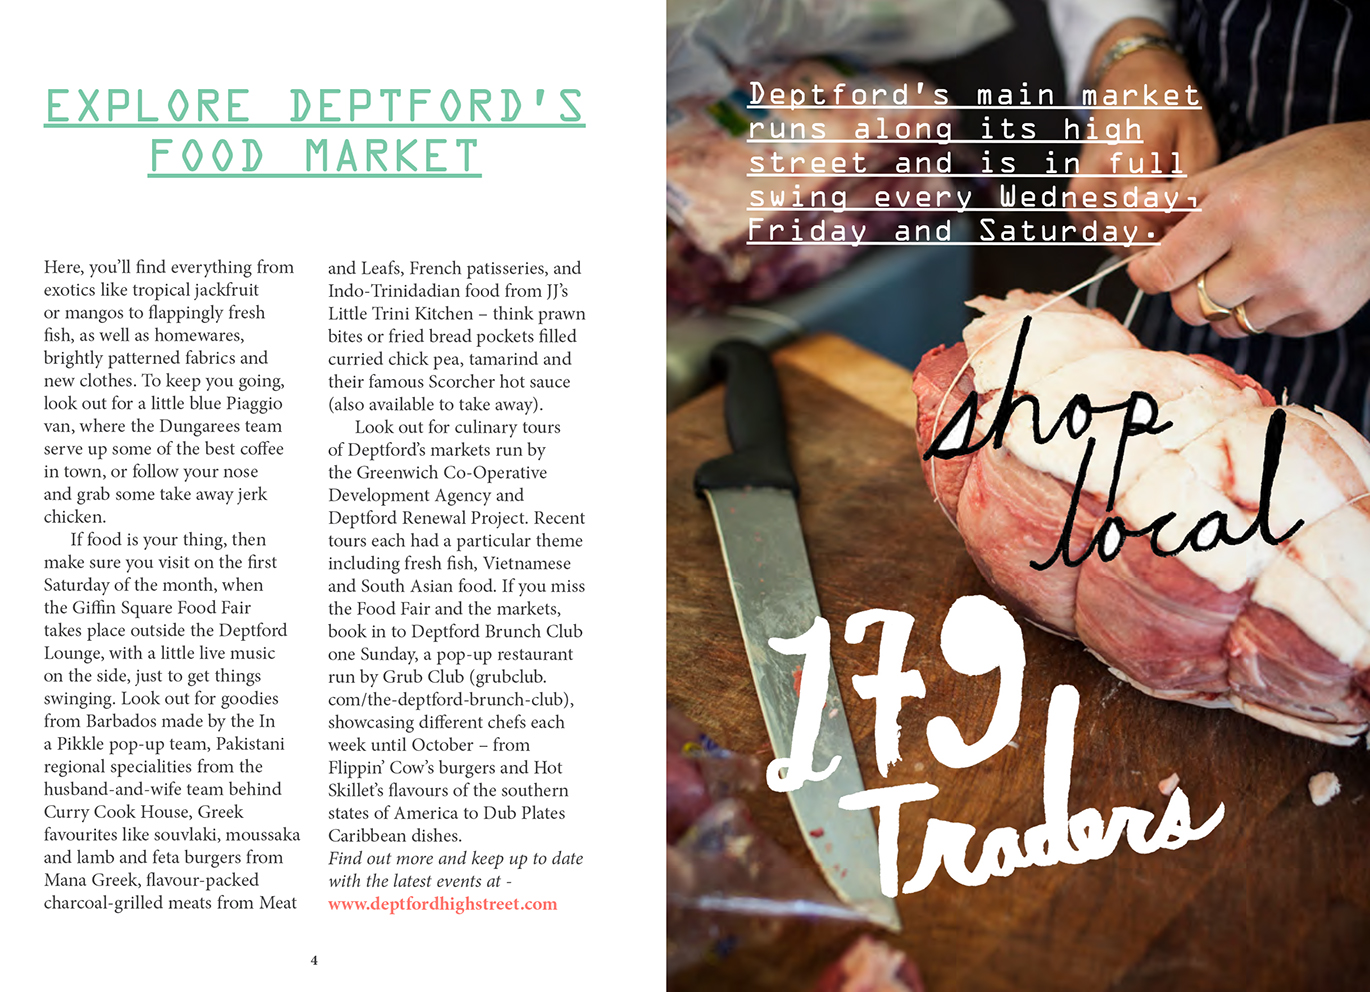 Pocket sized booklet about the Deptford Markets, distributed to 20,000 market goers and bargain hunters across London. Part of The Deptford Project.